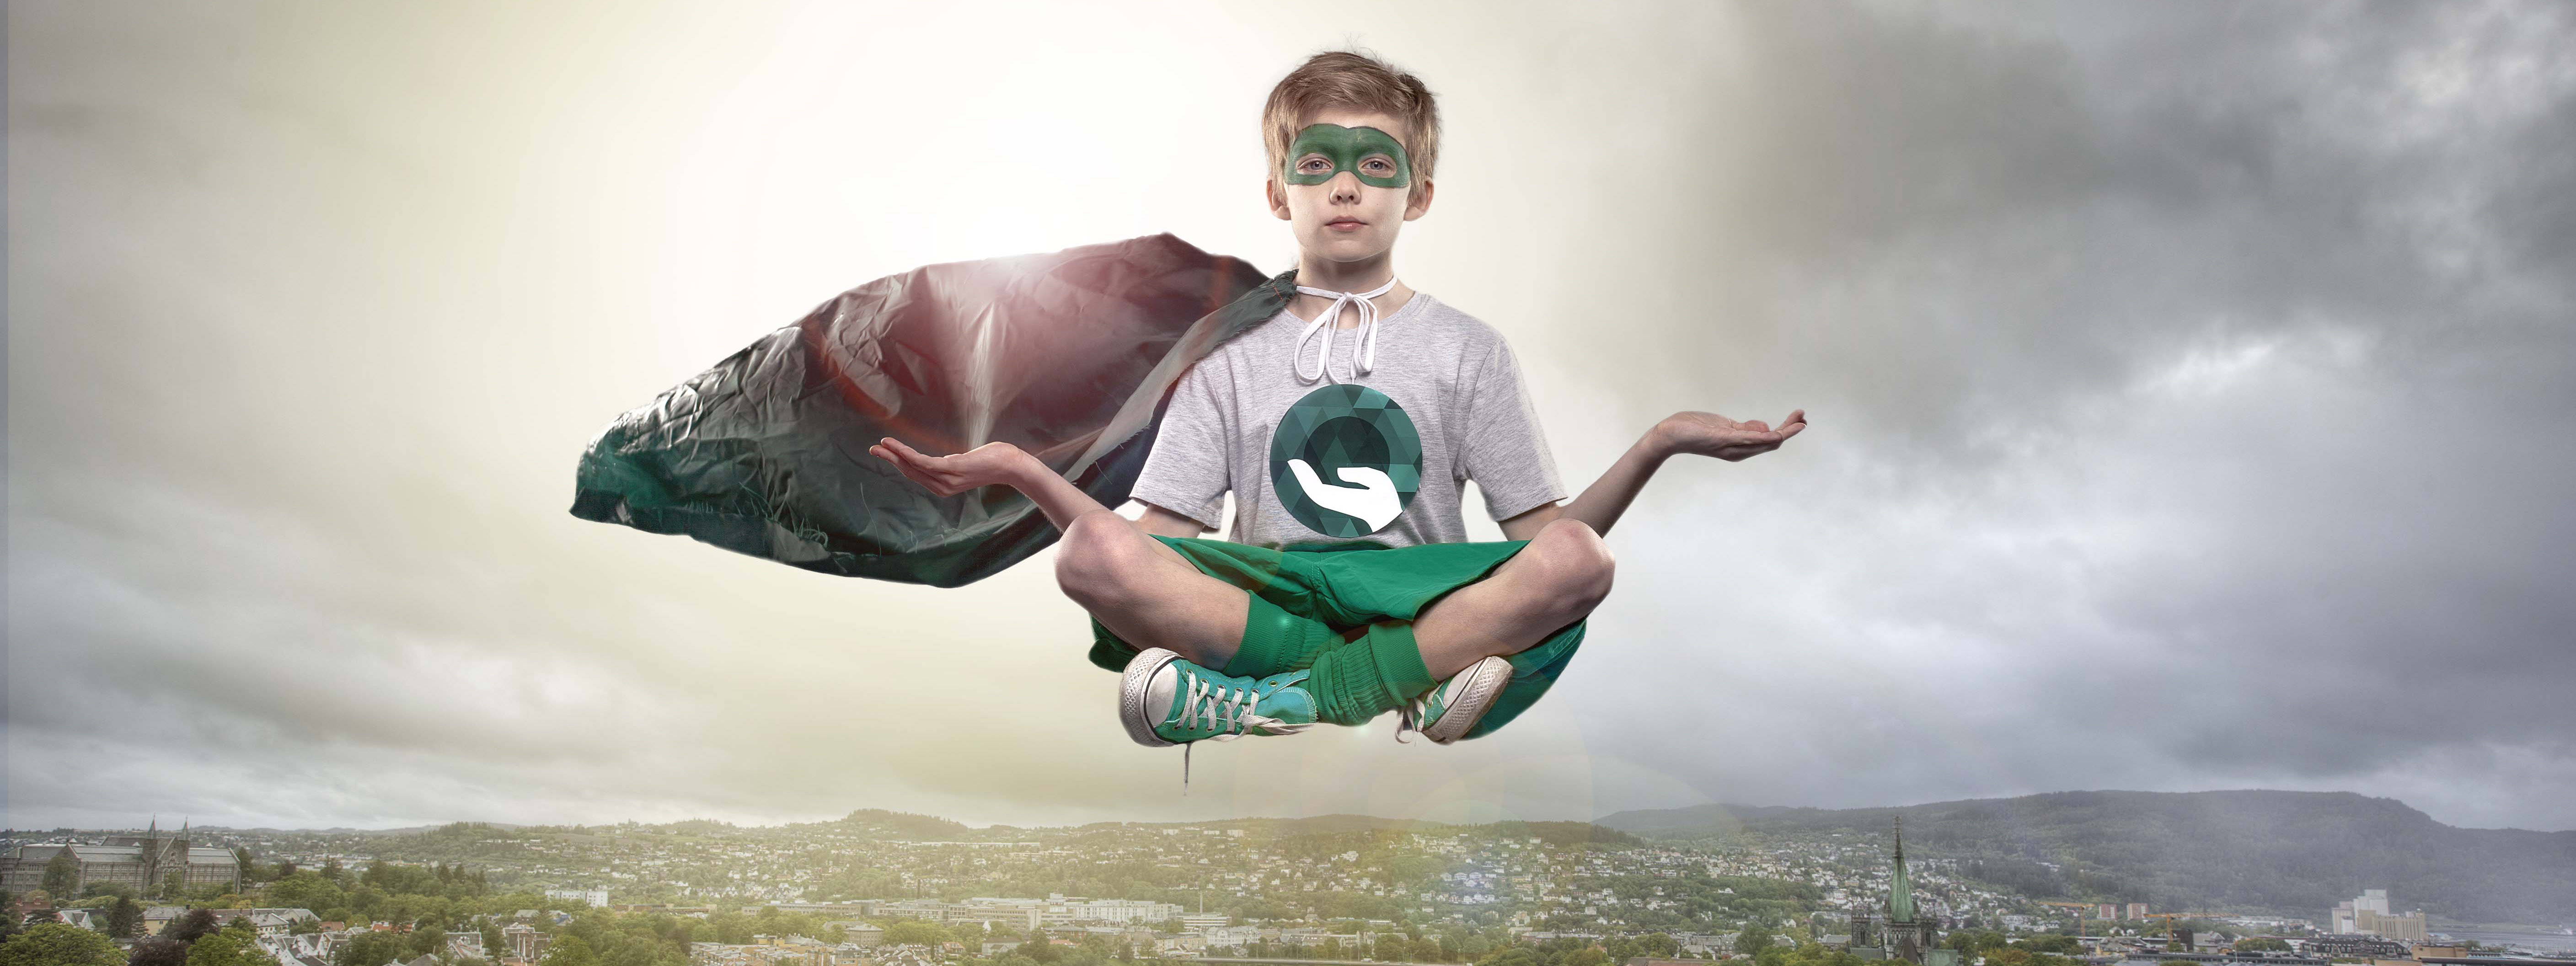 Green superhero over the city. Photo.